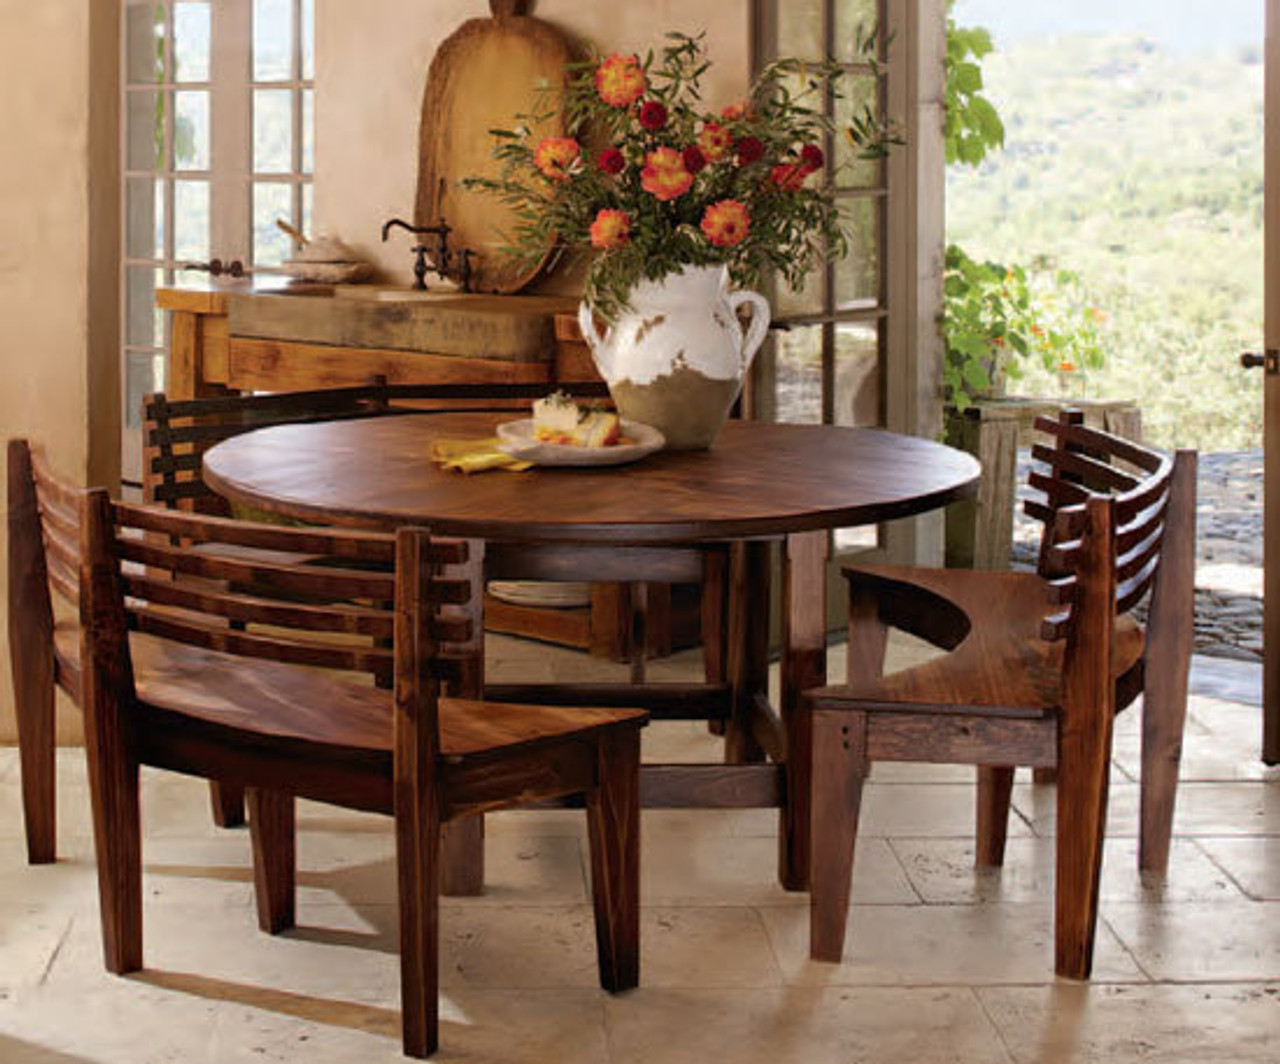 French Chateaux Wooden Table 3 Benches